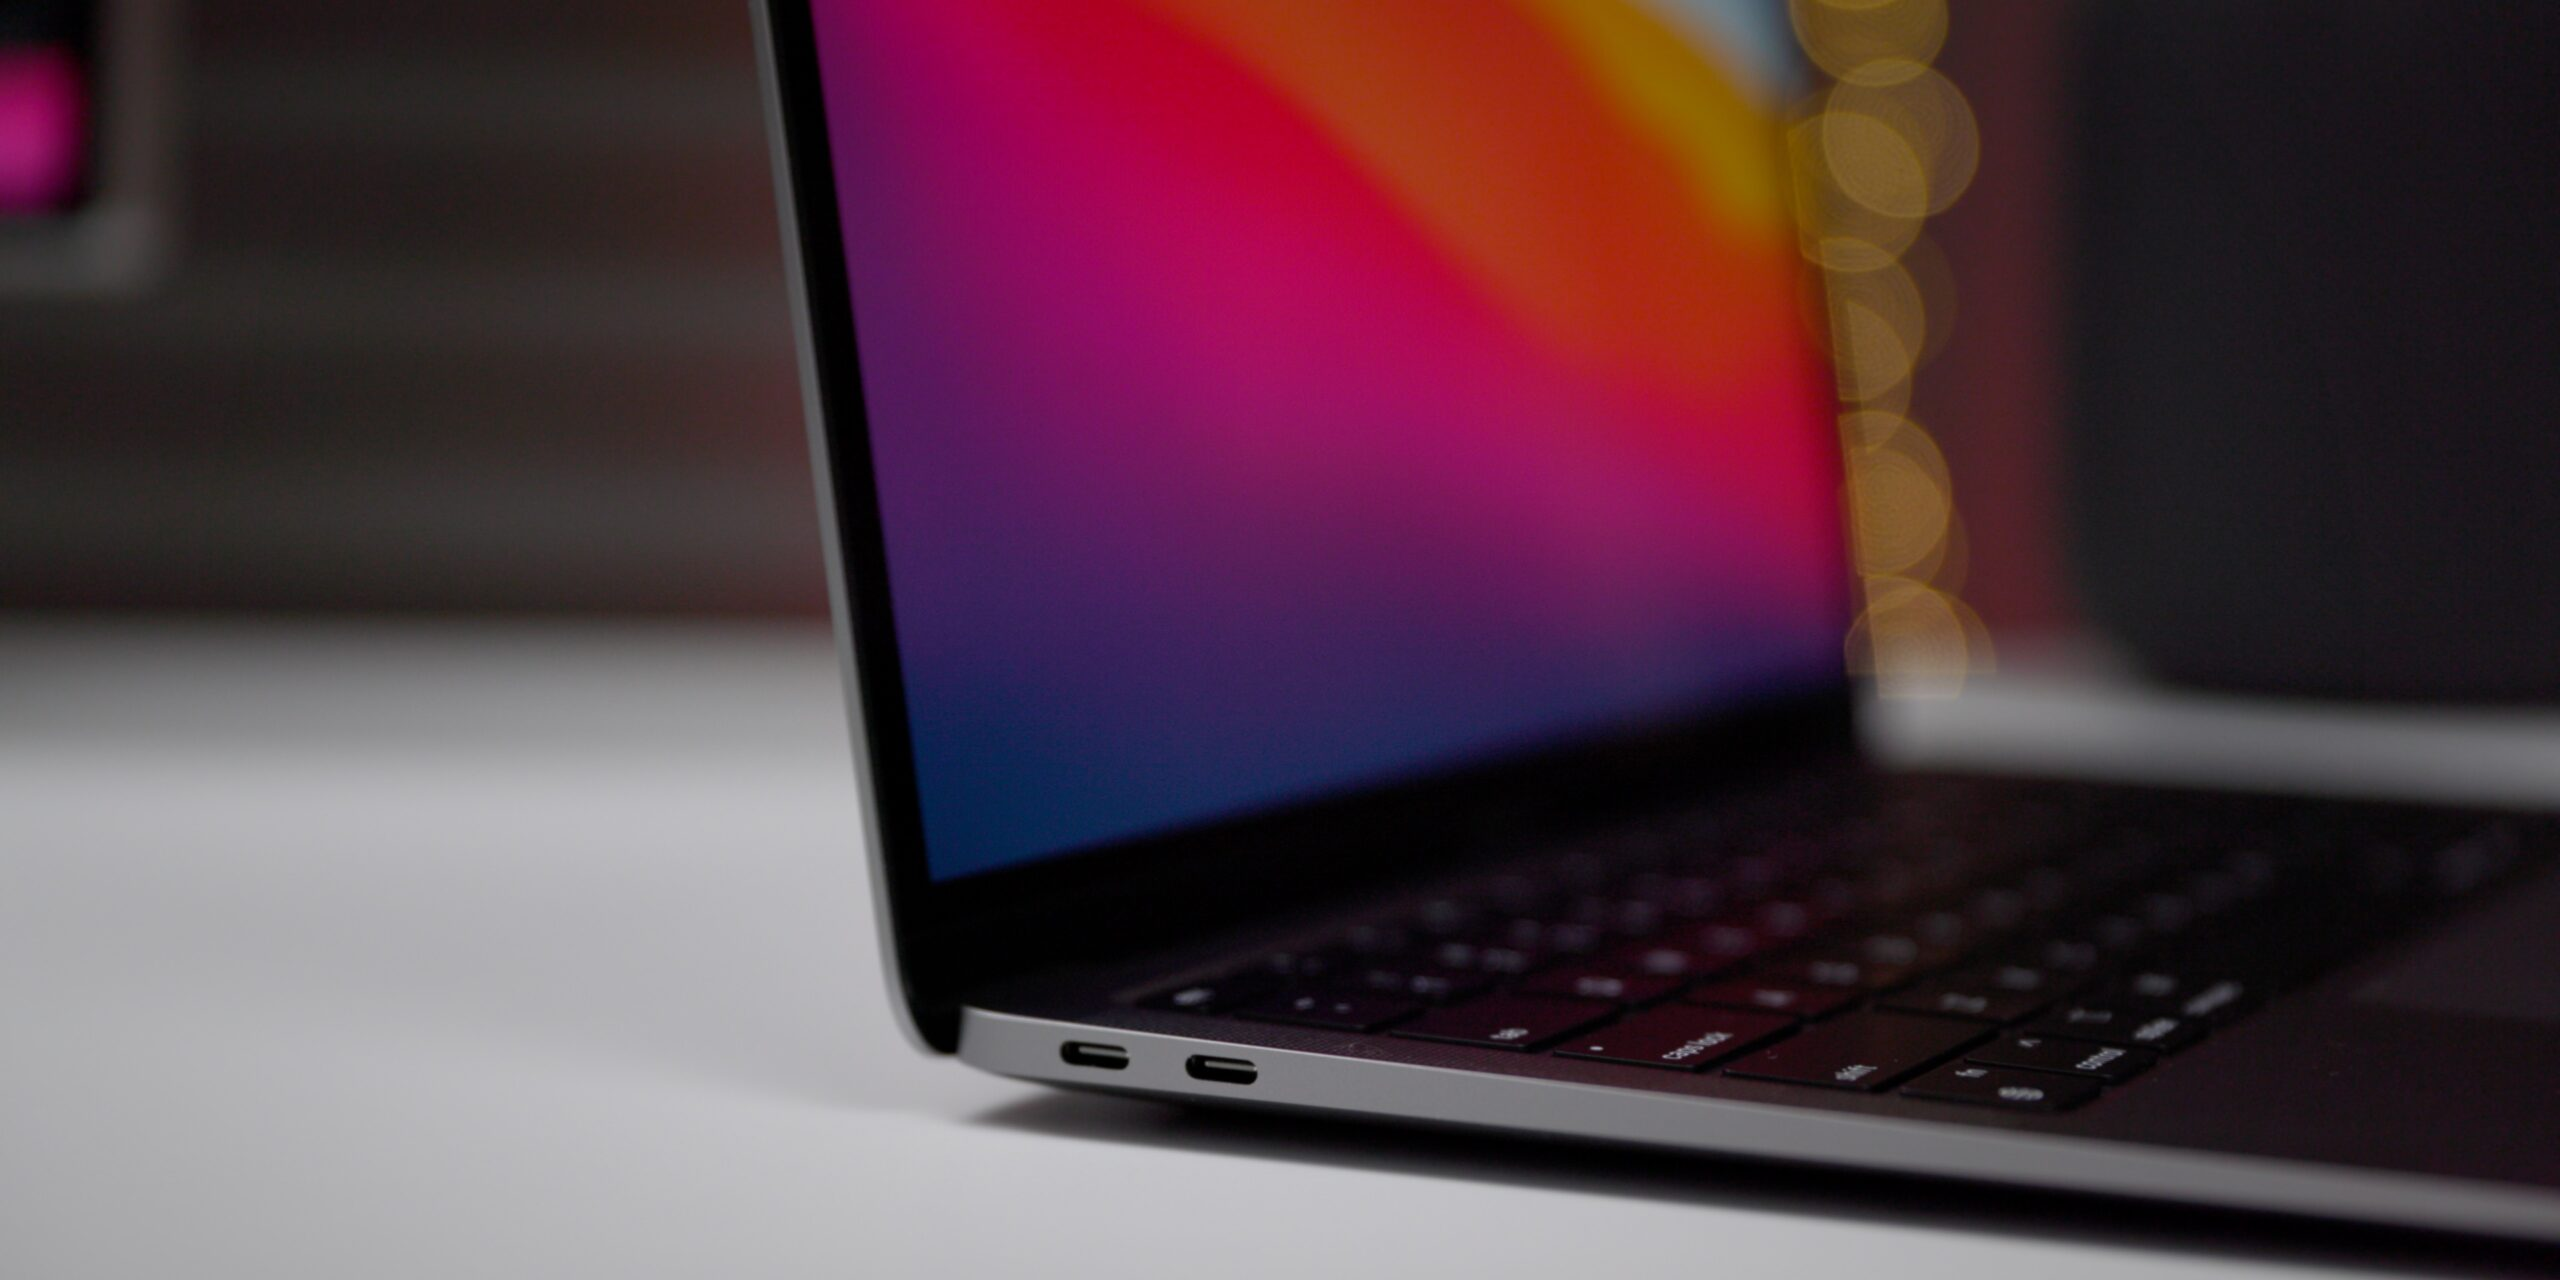 Apple @ Work: Are Macs cheaper than PCs in the enterprise? A new study says yes